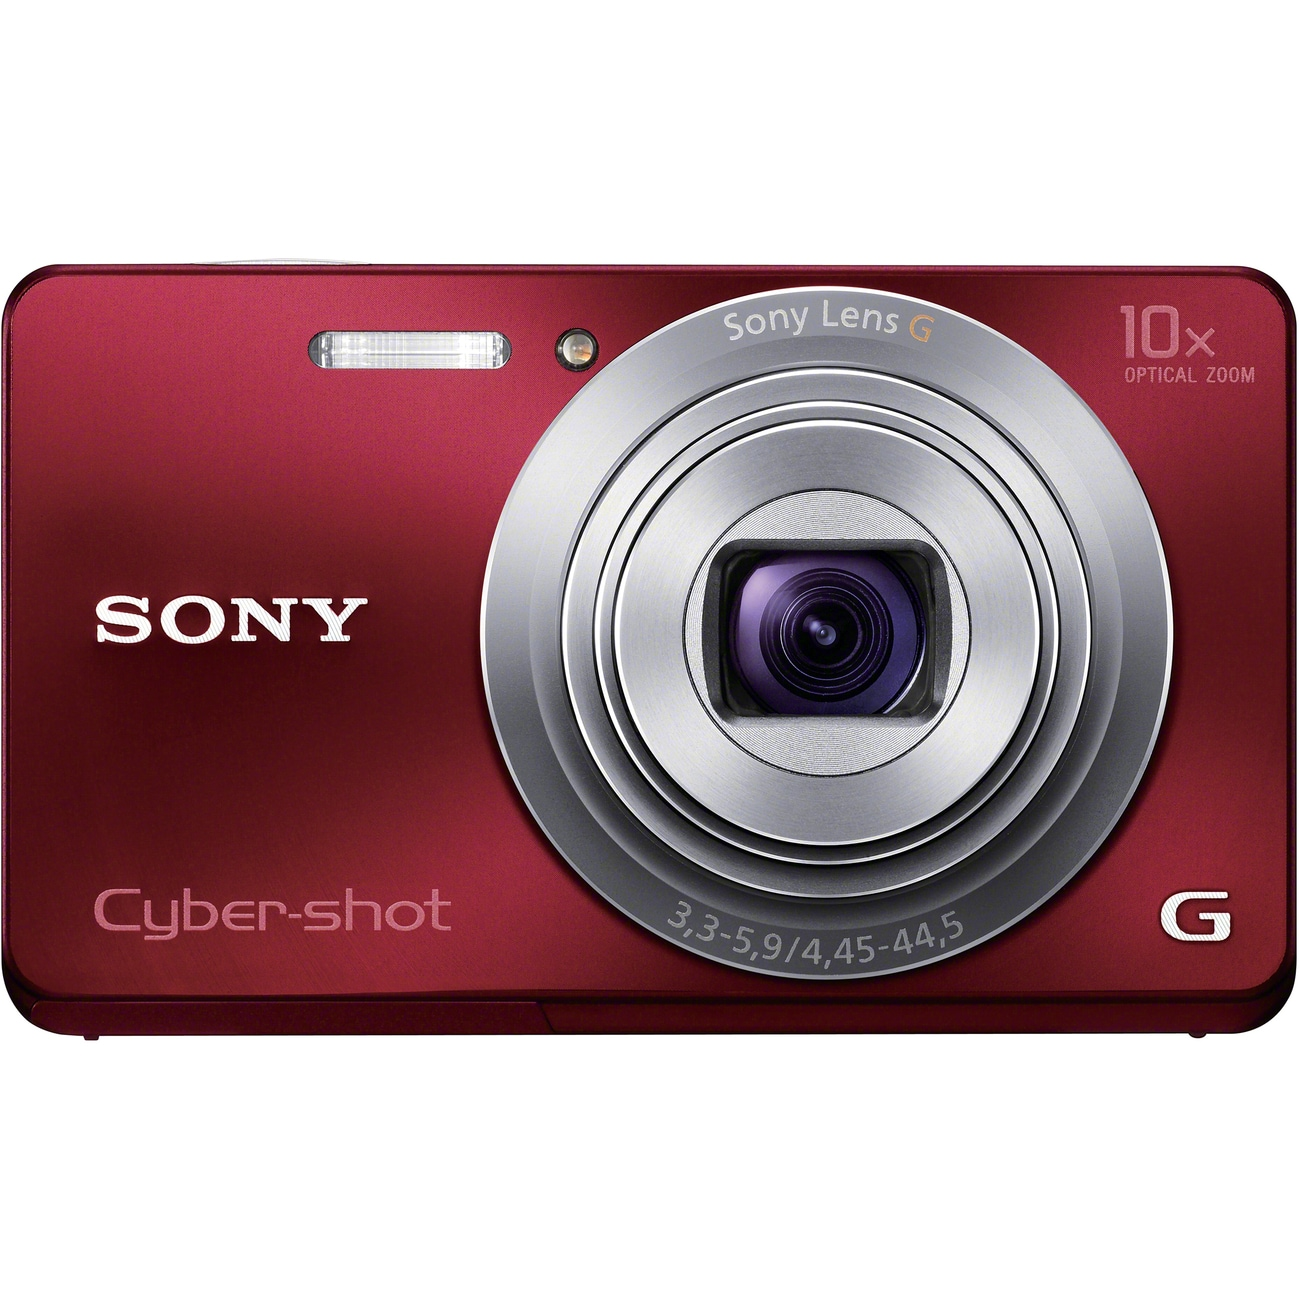 Sony Cyber-shot DSC-W690 16.1 Megapixel Compact Camera - Red